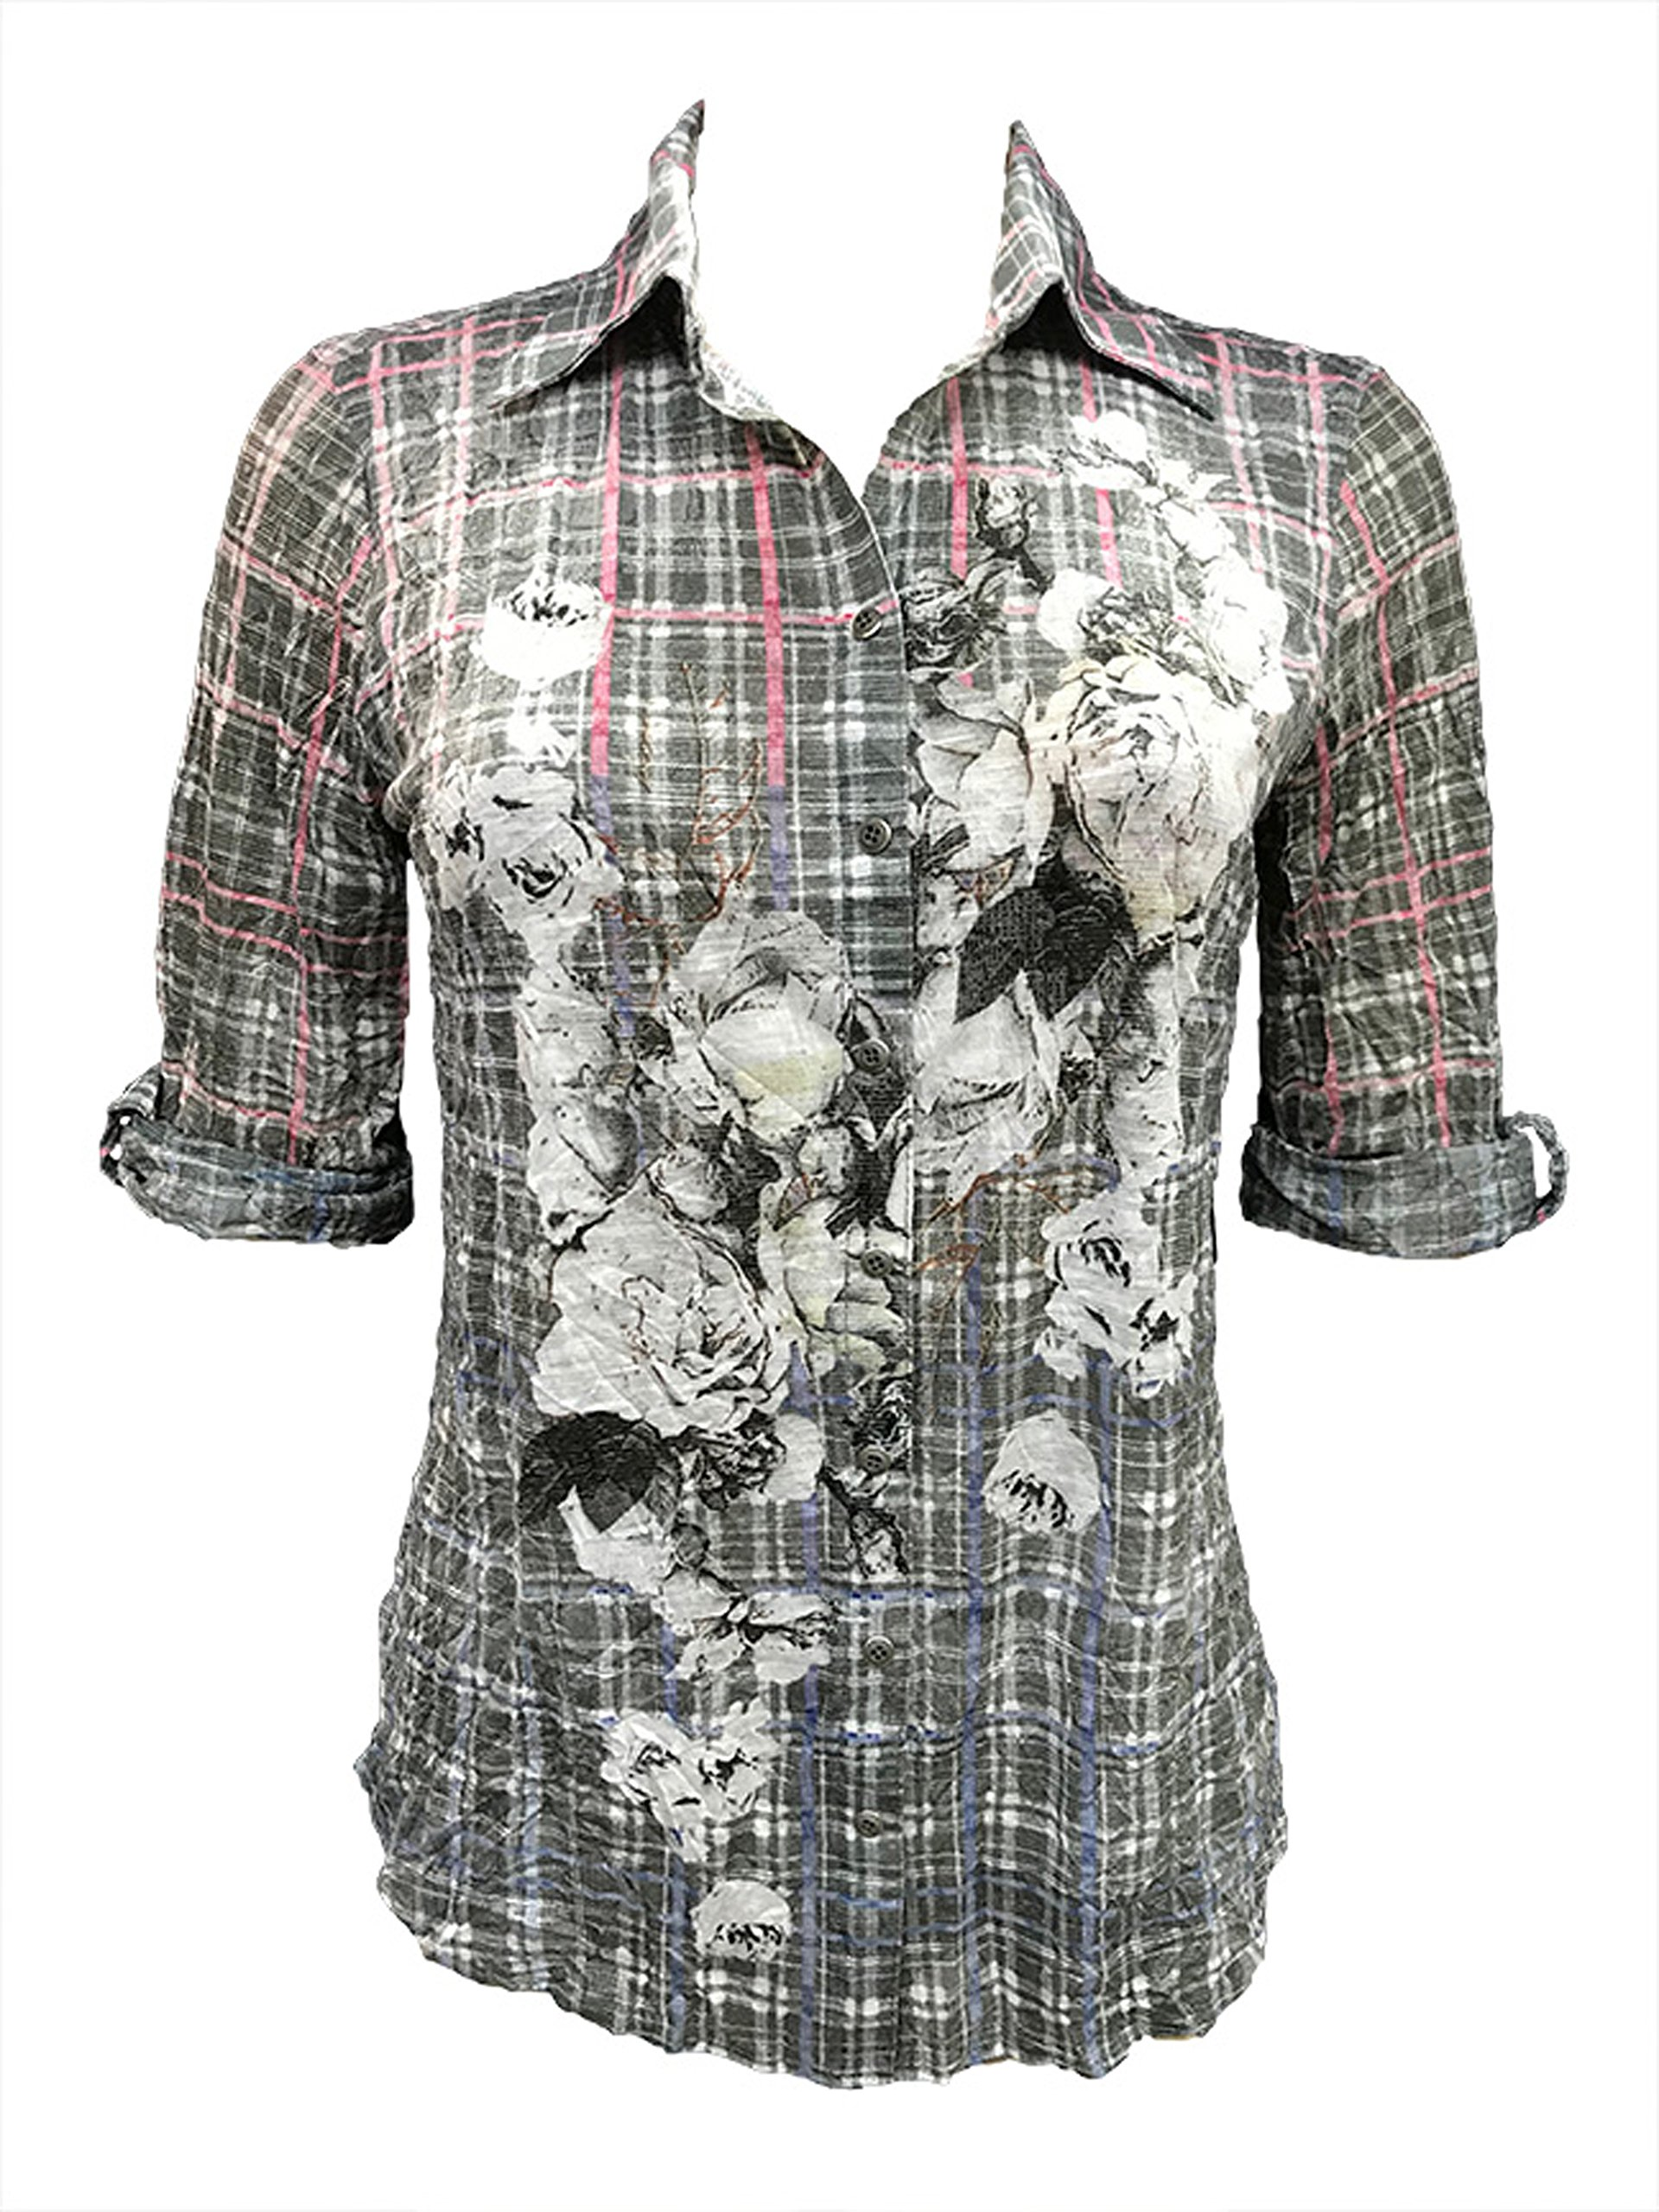 David Cline Woman's Button Down Crushed 3/4 Sleeve Vintage Shirt. Super Soft Comfortable Fabric.